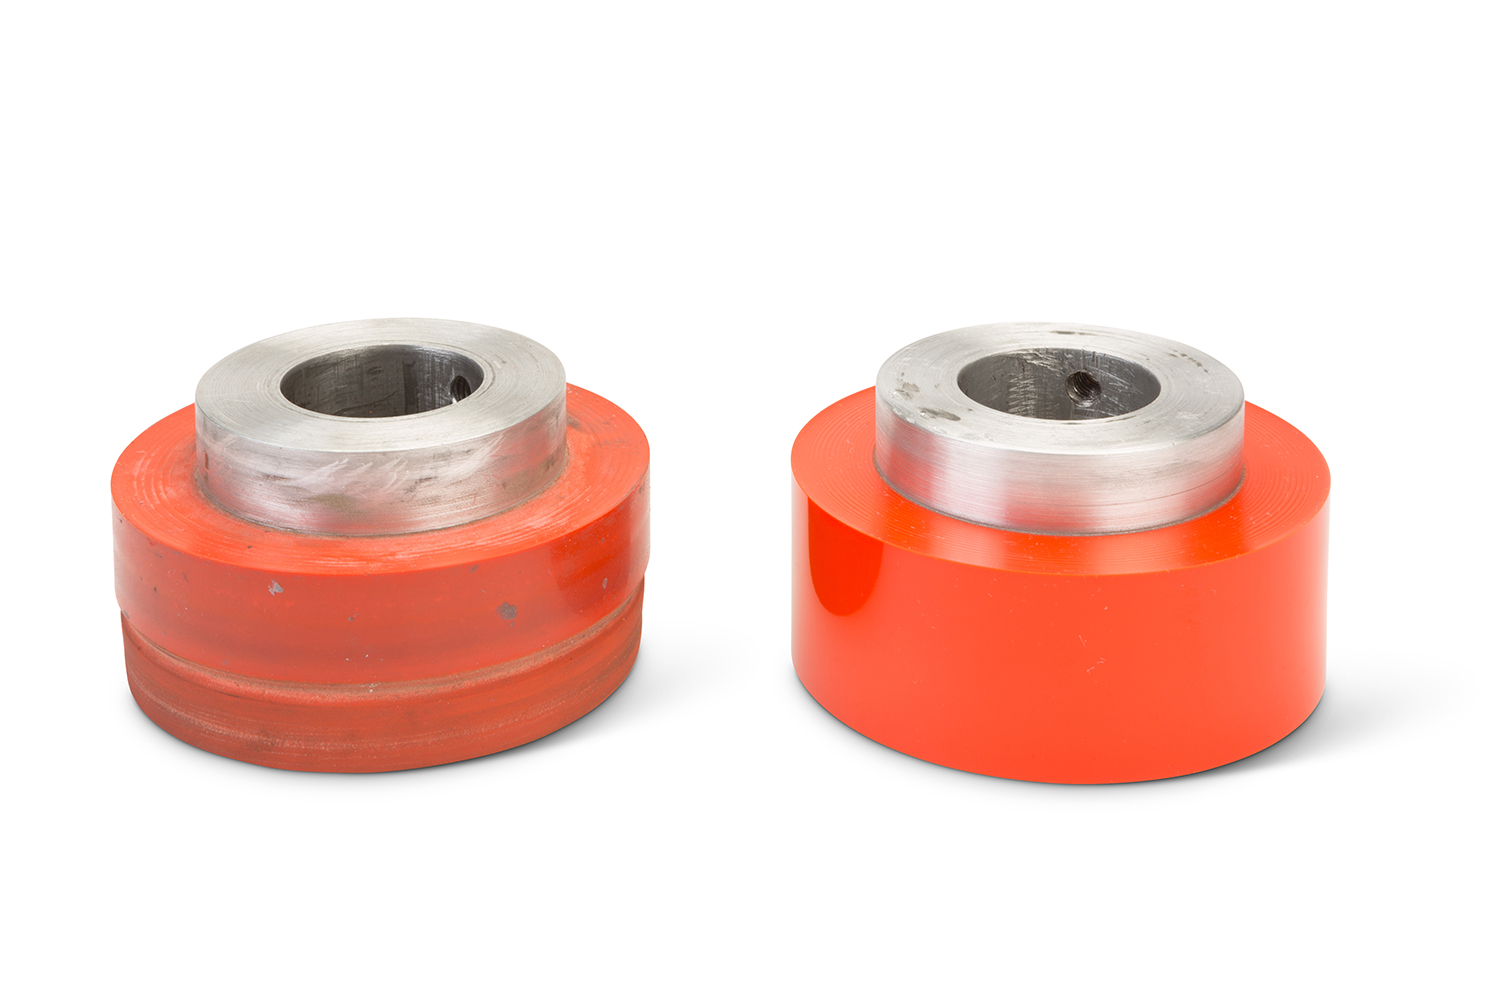 Used roller (left) / New, recovered roller (right)